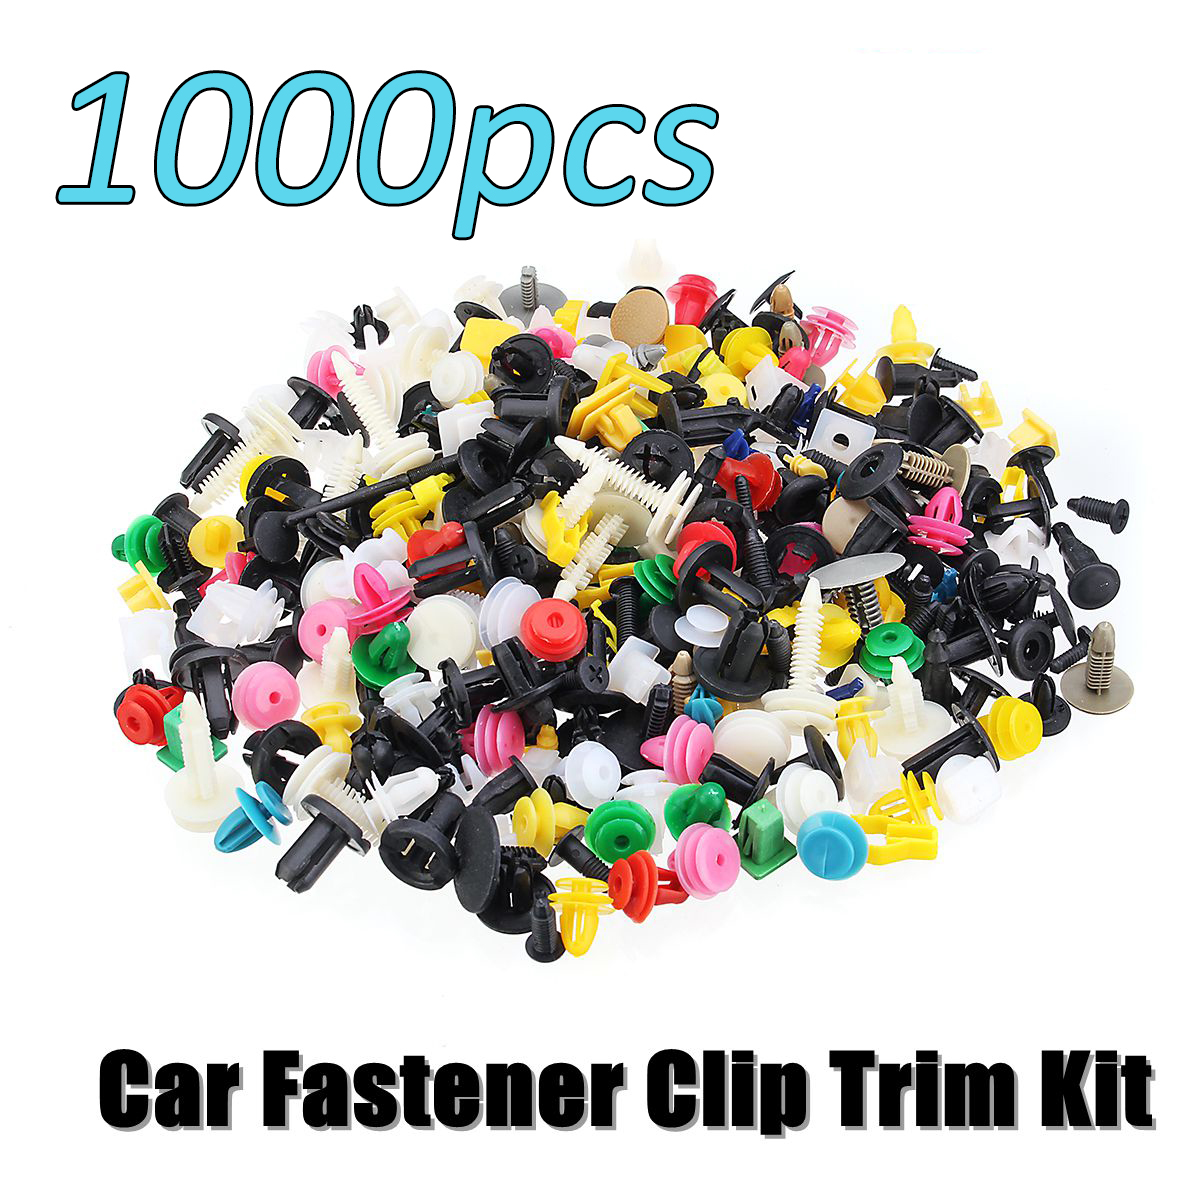 500Pcs Universal Mixed Auto Fastener Car Bumper Clips Retainer Push Engine Cover Car Fastener Rivet Door Panel For Fender Liner(China)